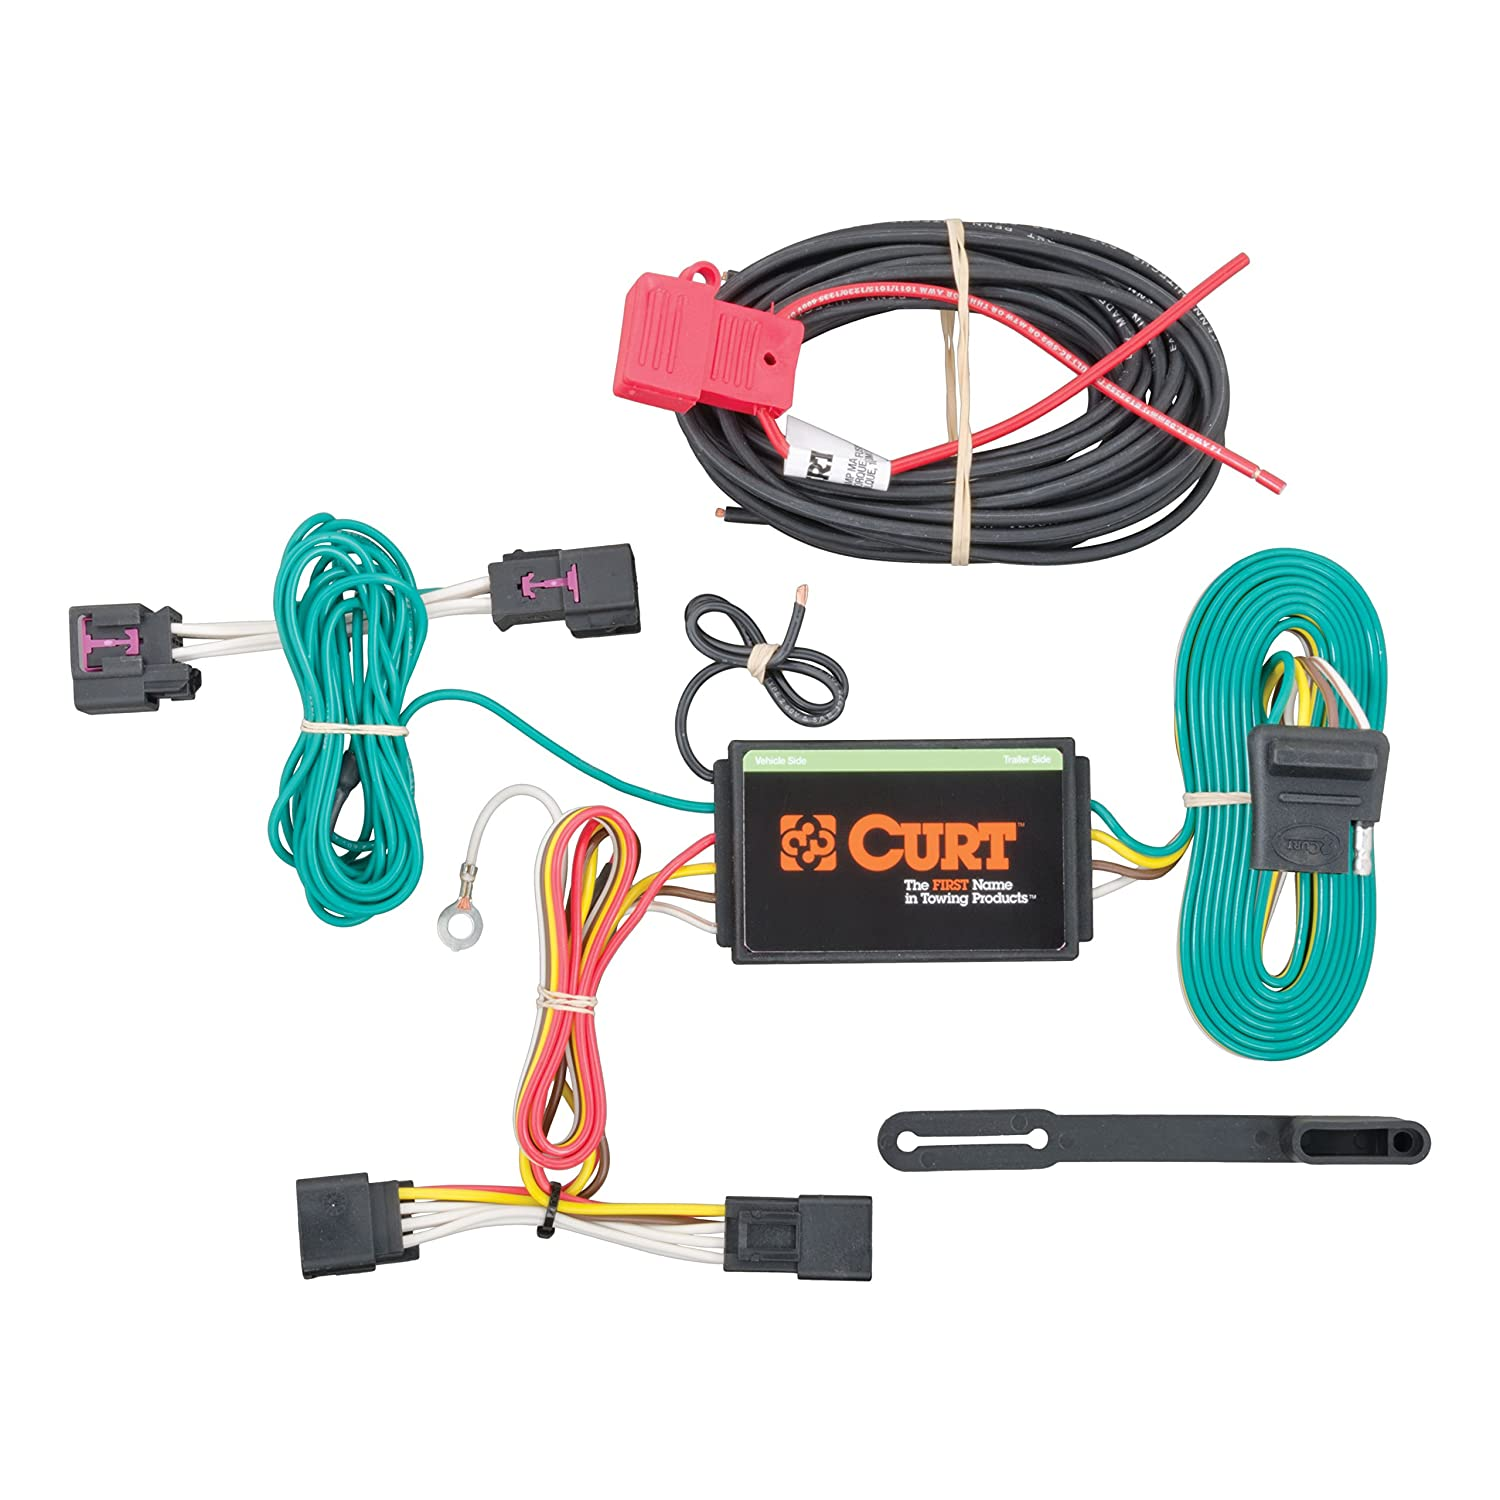 Curt Class 1 Trailer Hitch Bundle With Wiring For Avalon Harness Towing Chevrolet Cruze Limited 11282 56214 Automotive